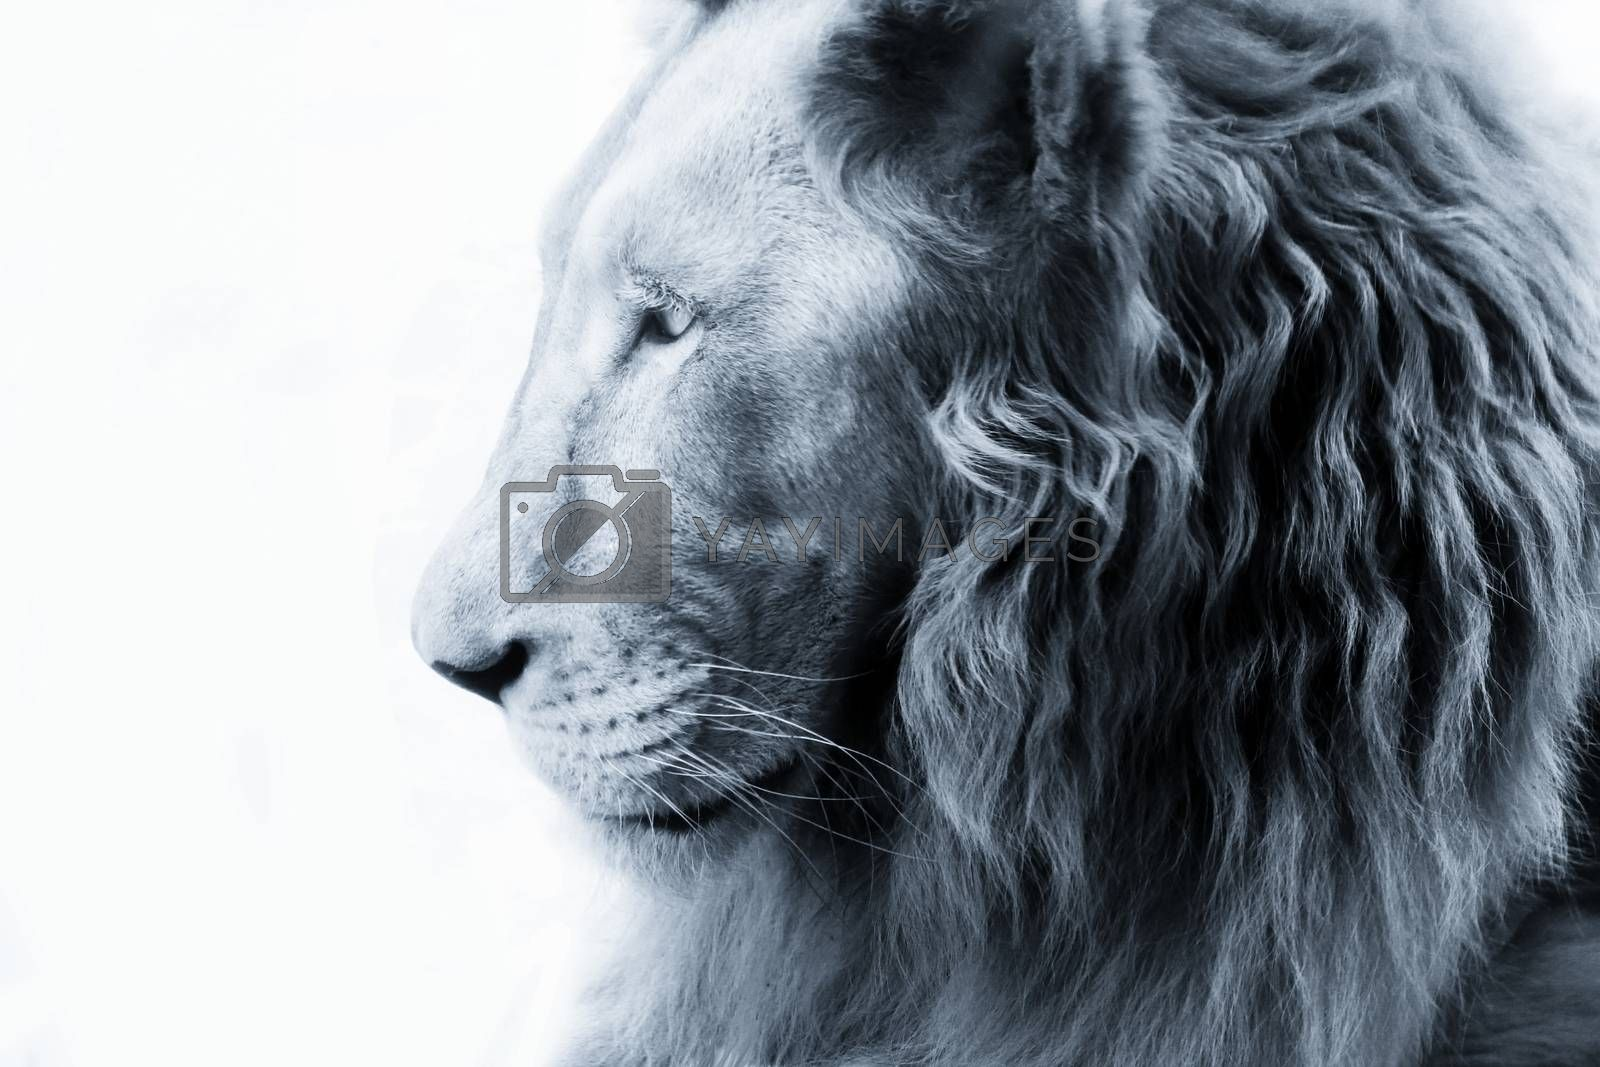 Portrait of a lion close-up